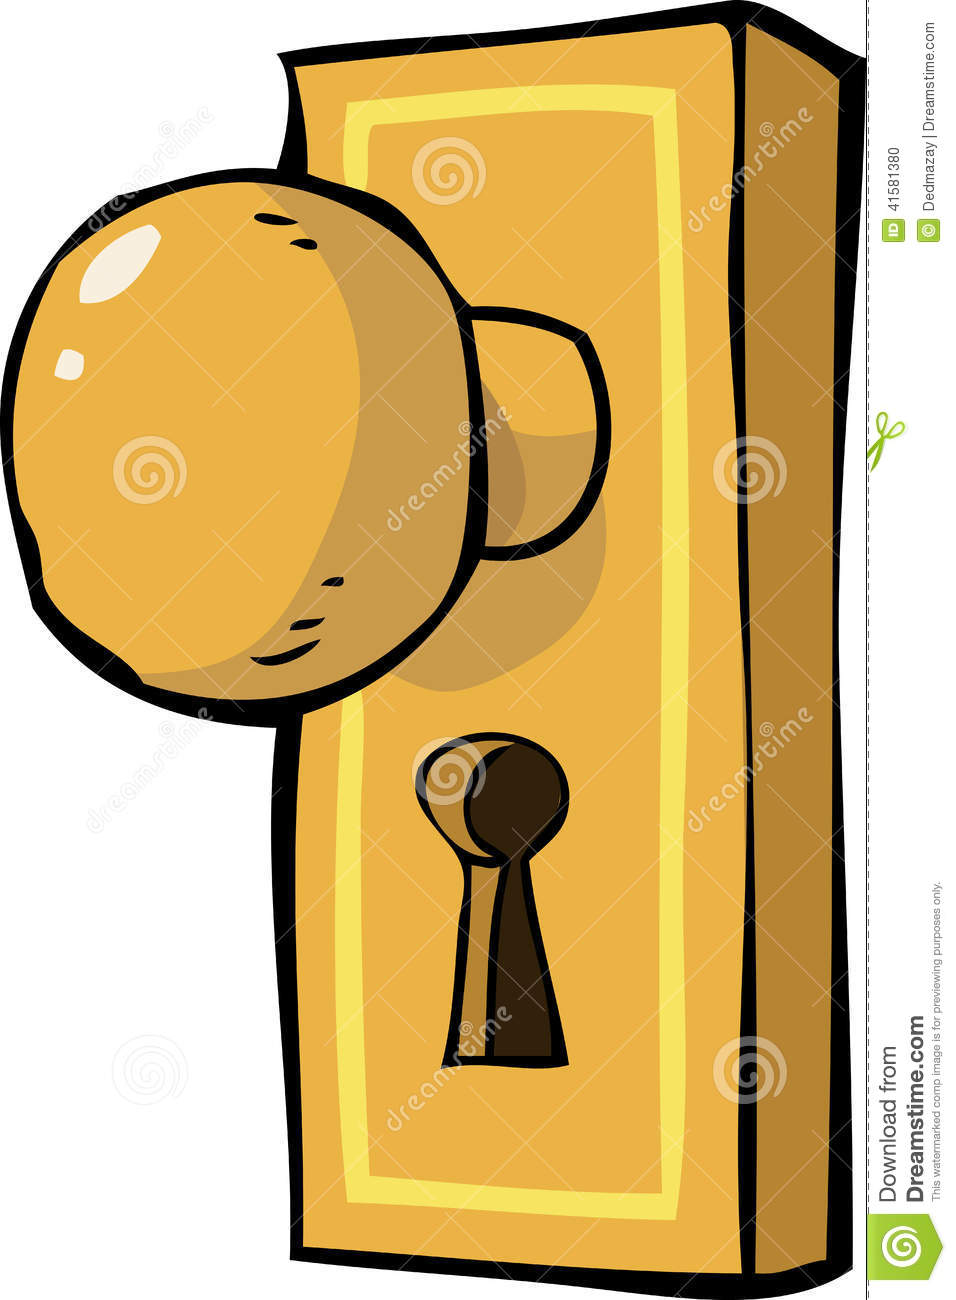 Handle Cartoons Illustrations Amp Vector Stock Images